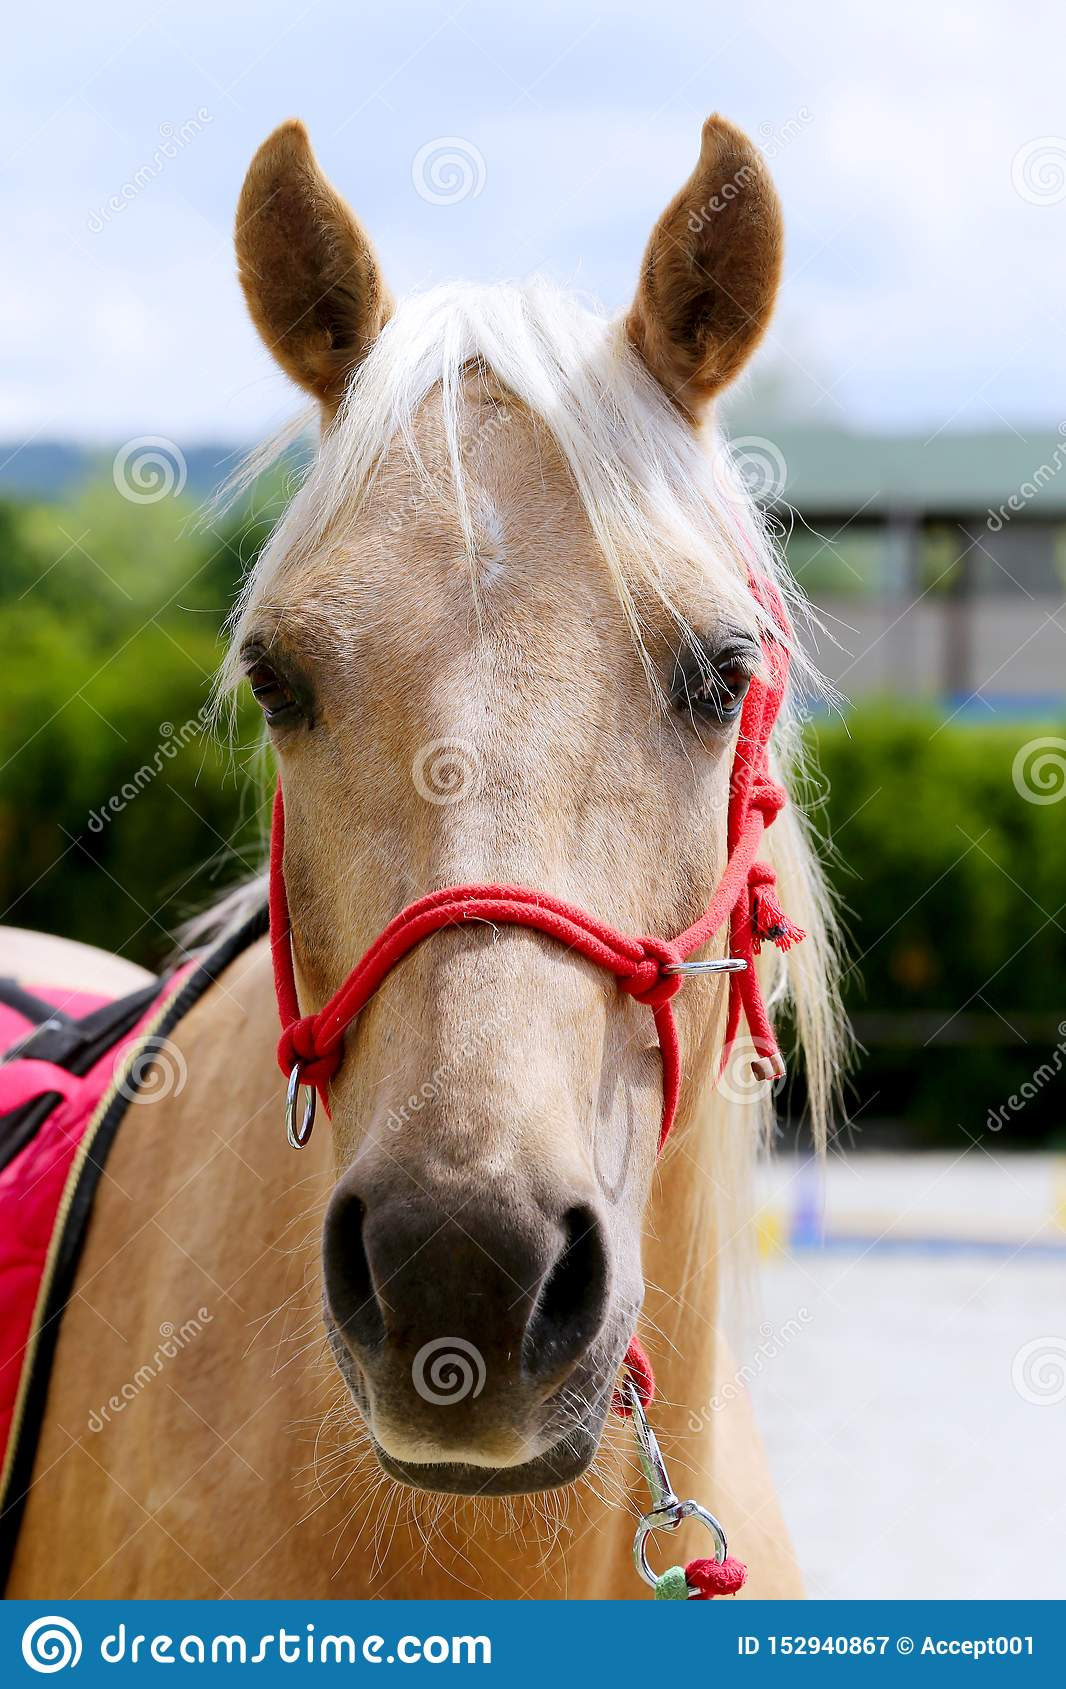 Beautiful Horse Head Closeup With Reins During Training Stock Image Image Of Equine Creature 152940867